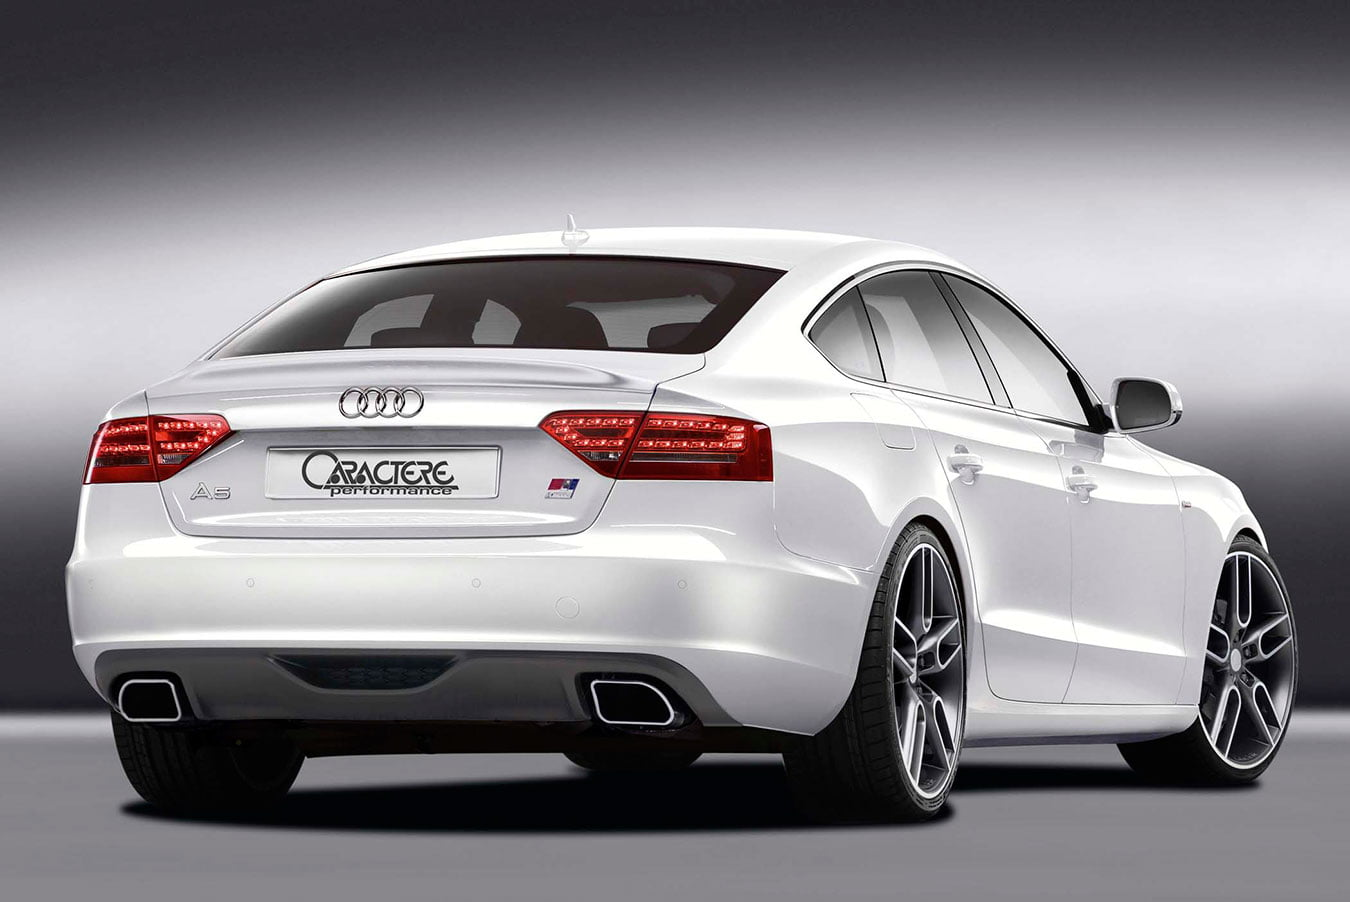 Caractere Rear Diffuser with 2 Mufflers, fits Audi A5 B8.0 Sportback 2.7-3.0 TDI / 2.0 TFSI / 3.2 V6